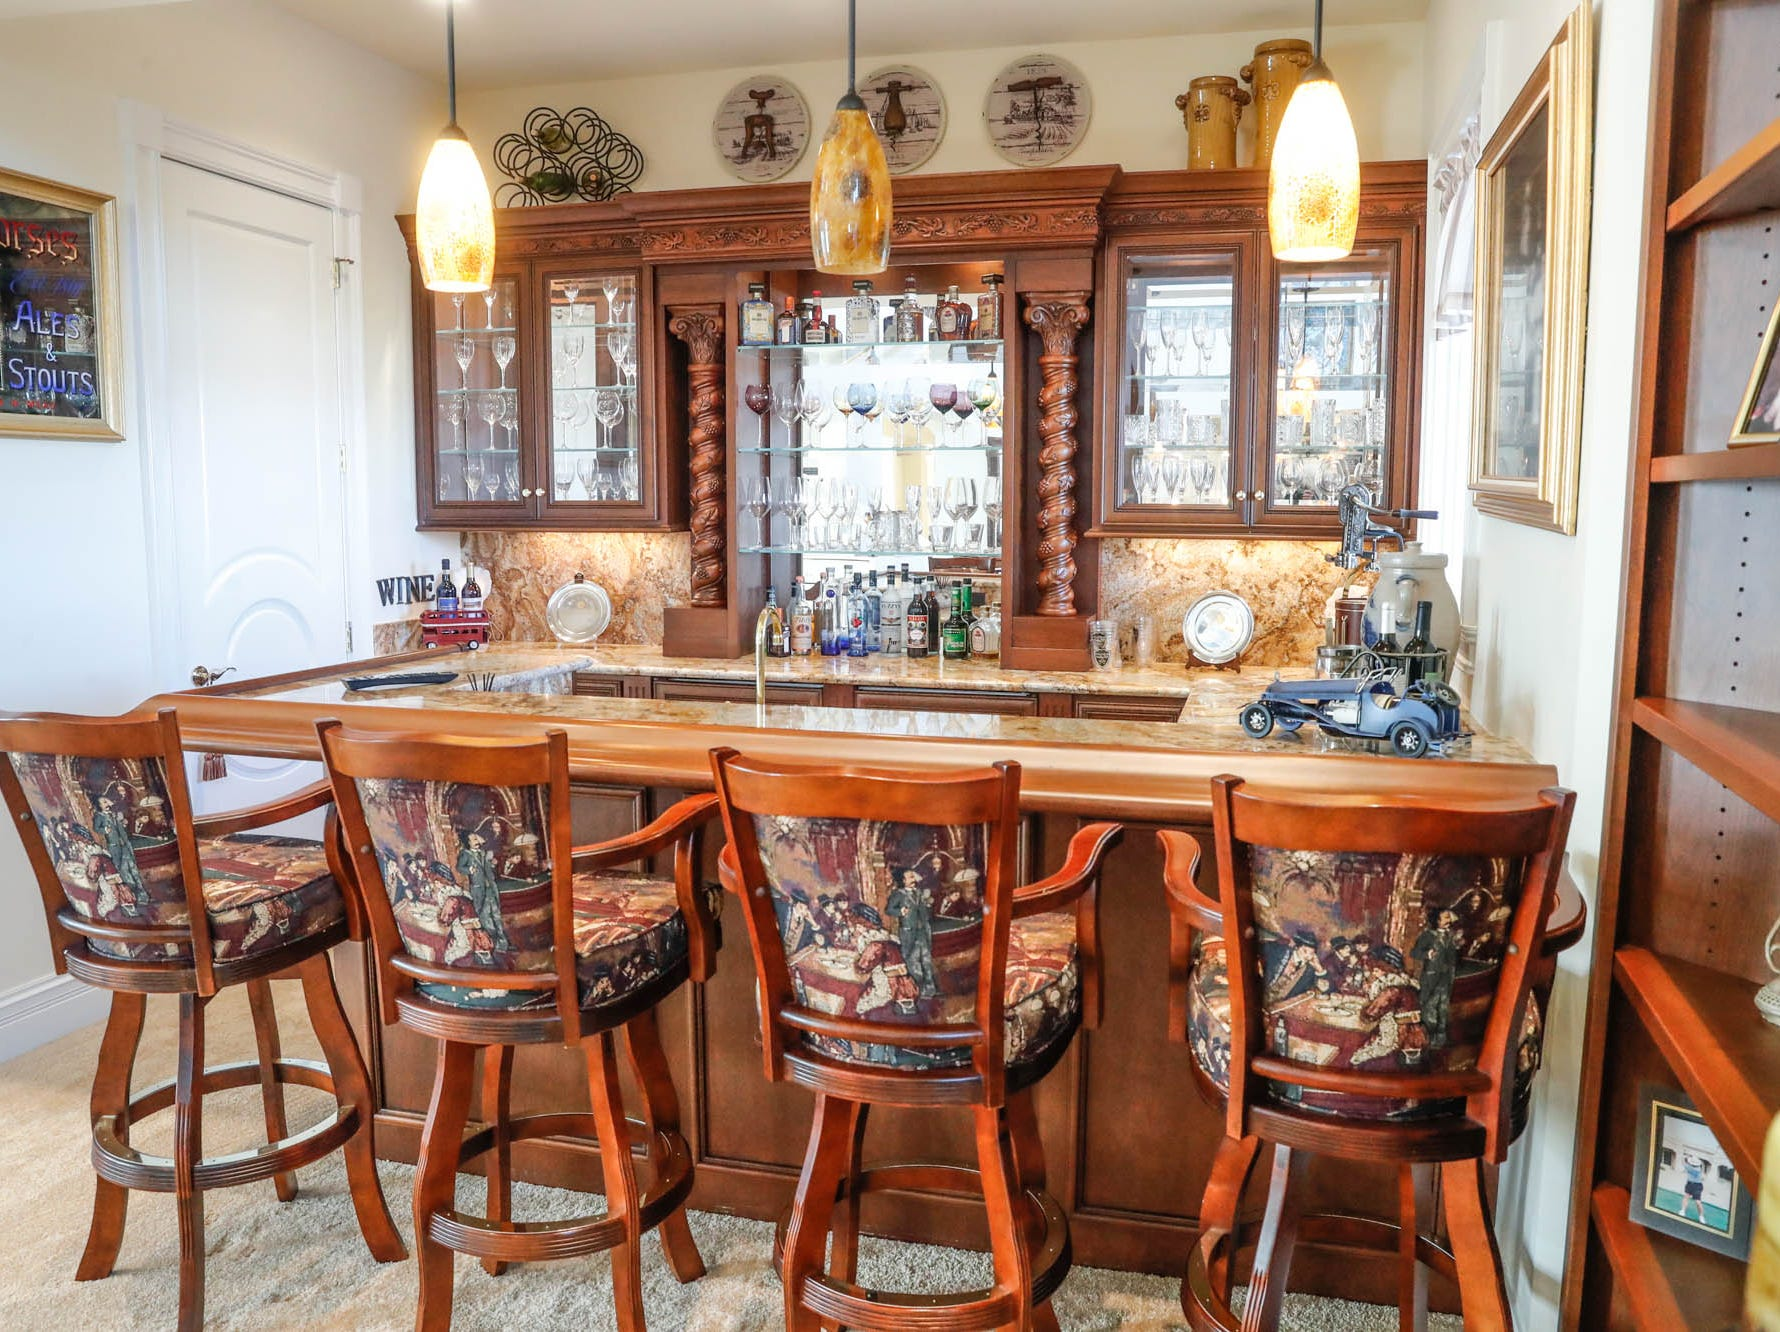 A Greenwood home up for sale at 1216 Stone Ridge Court, Greenwood, Ind., features a bar in the open living room on Wednesday, Jan. 30, 2019. The home features 8,234 square feet, four bedrooms, two master suits, a 10 car garage, and exercise room.